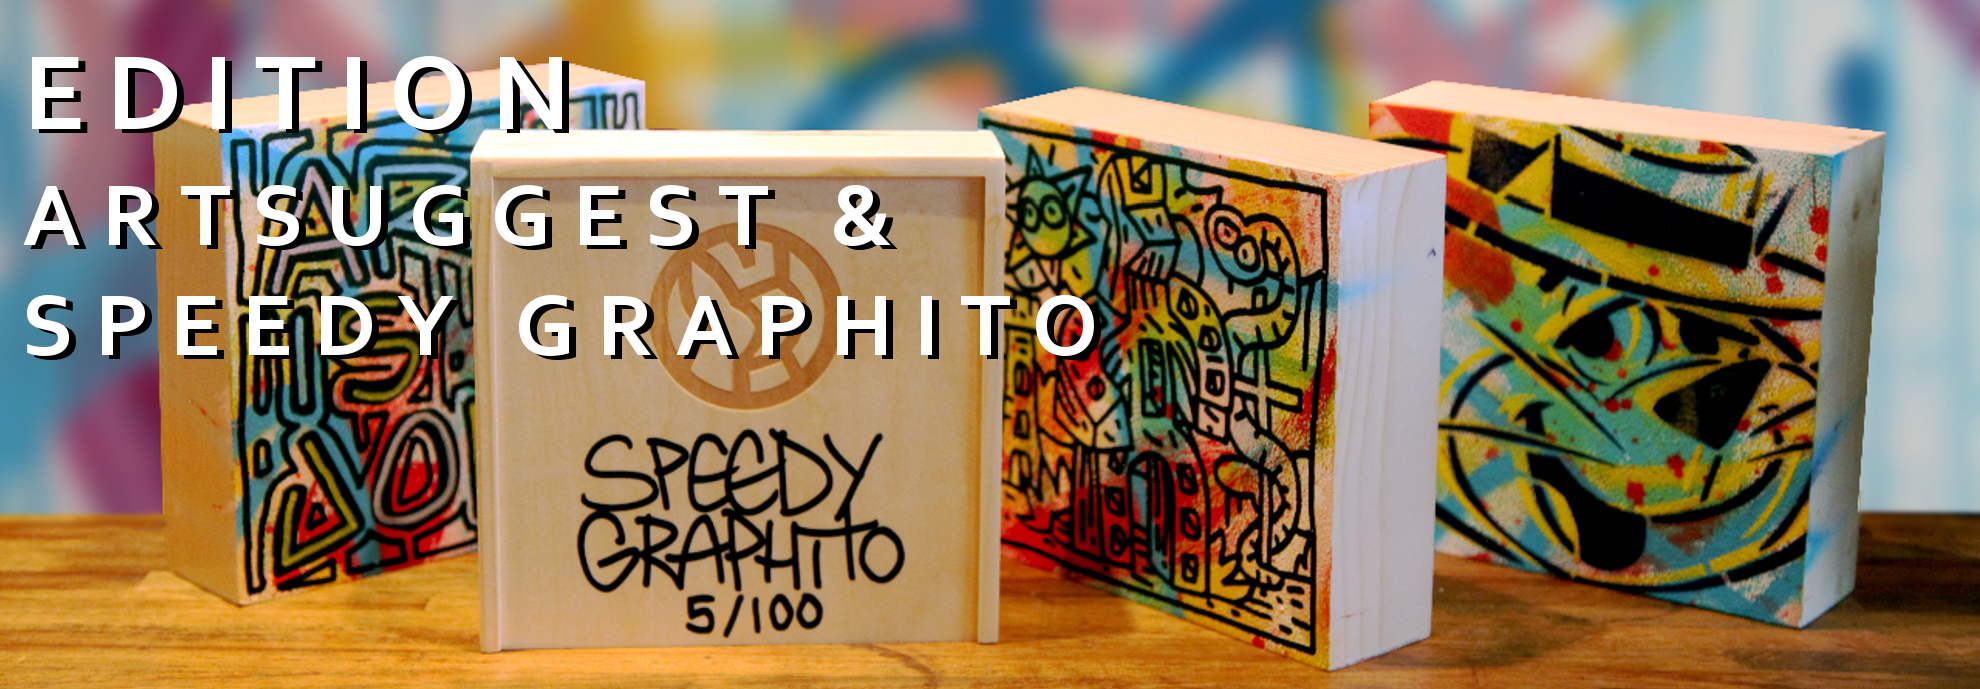 Wooden box by SPEEDY GRAPHITO